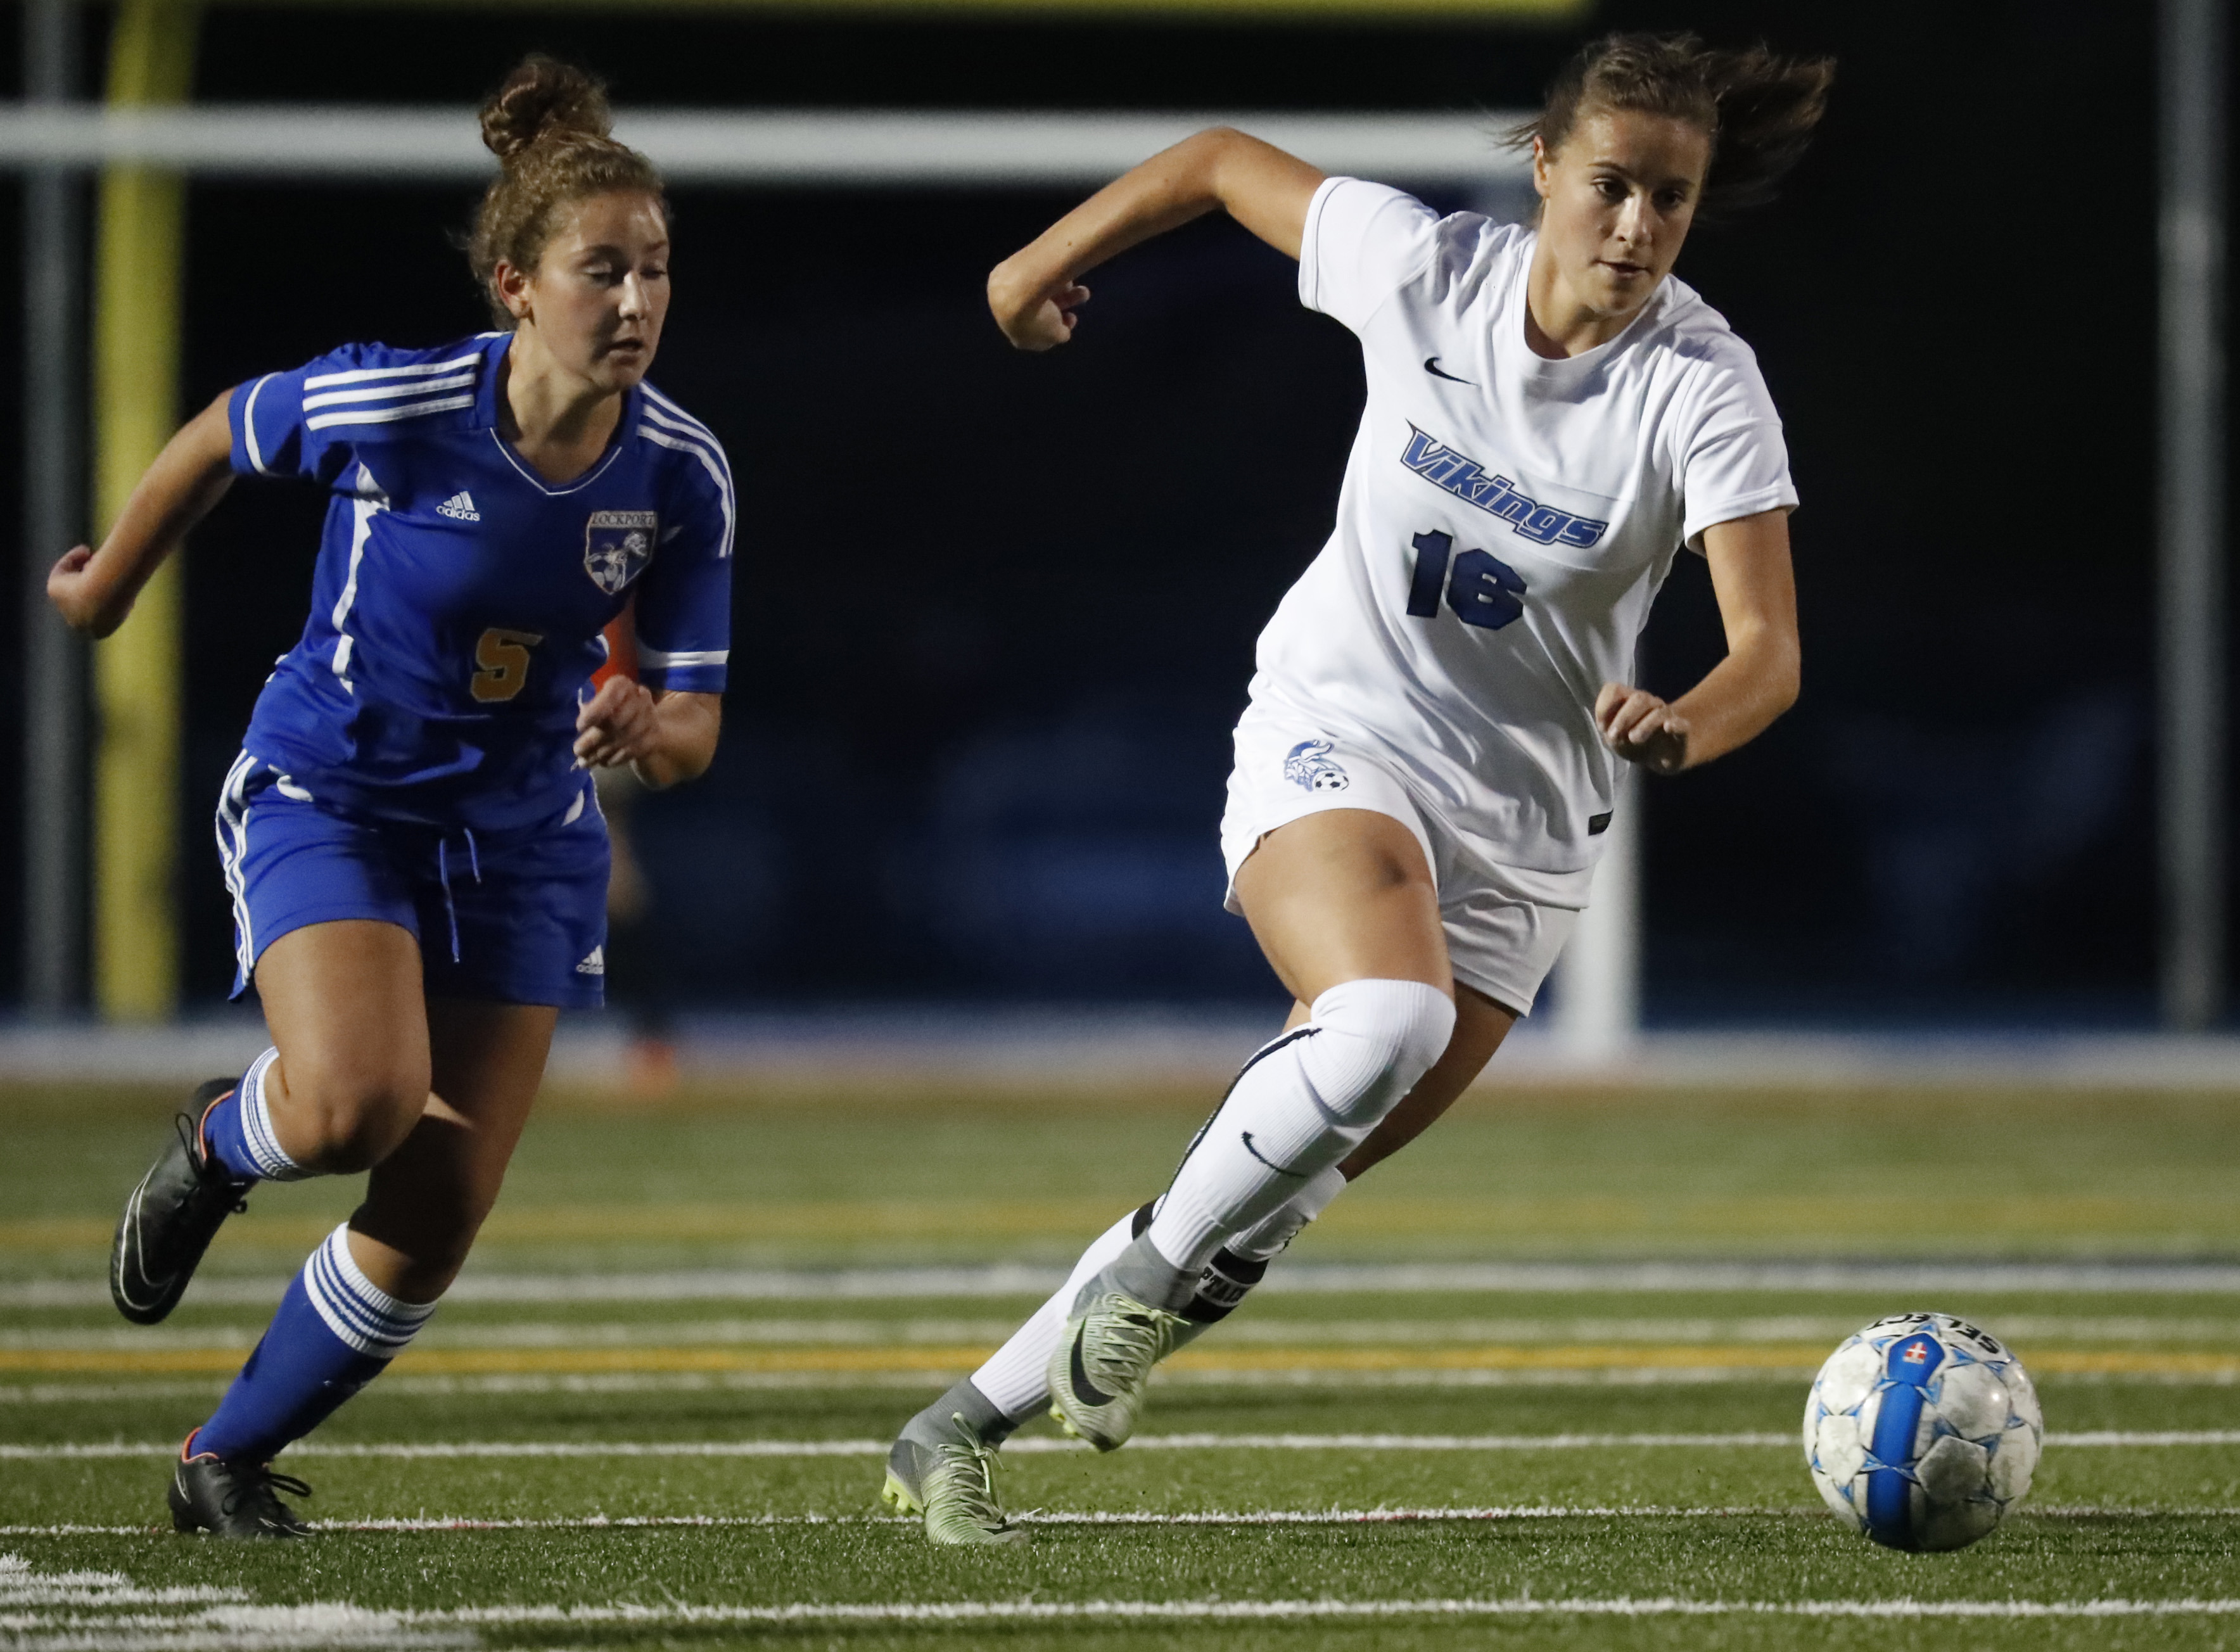 Madisyn Pezzino and Grand Island are the Class A-1 No. 1 seed heading into the Section VI girls soccer playoffs. (Harry Scull Jr./Buffalo News)